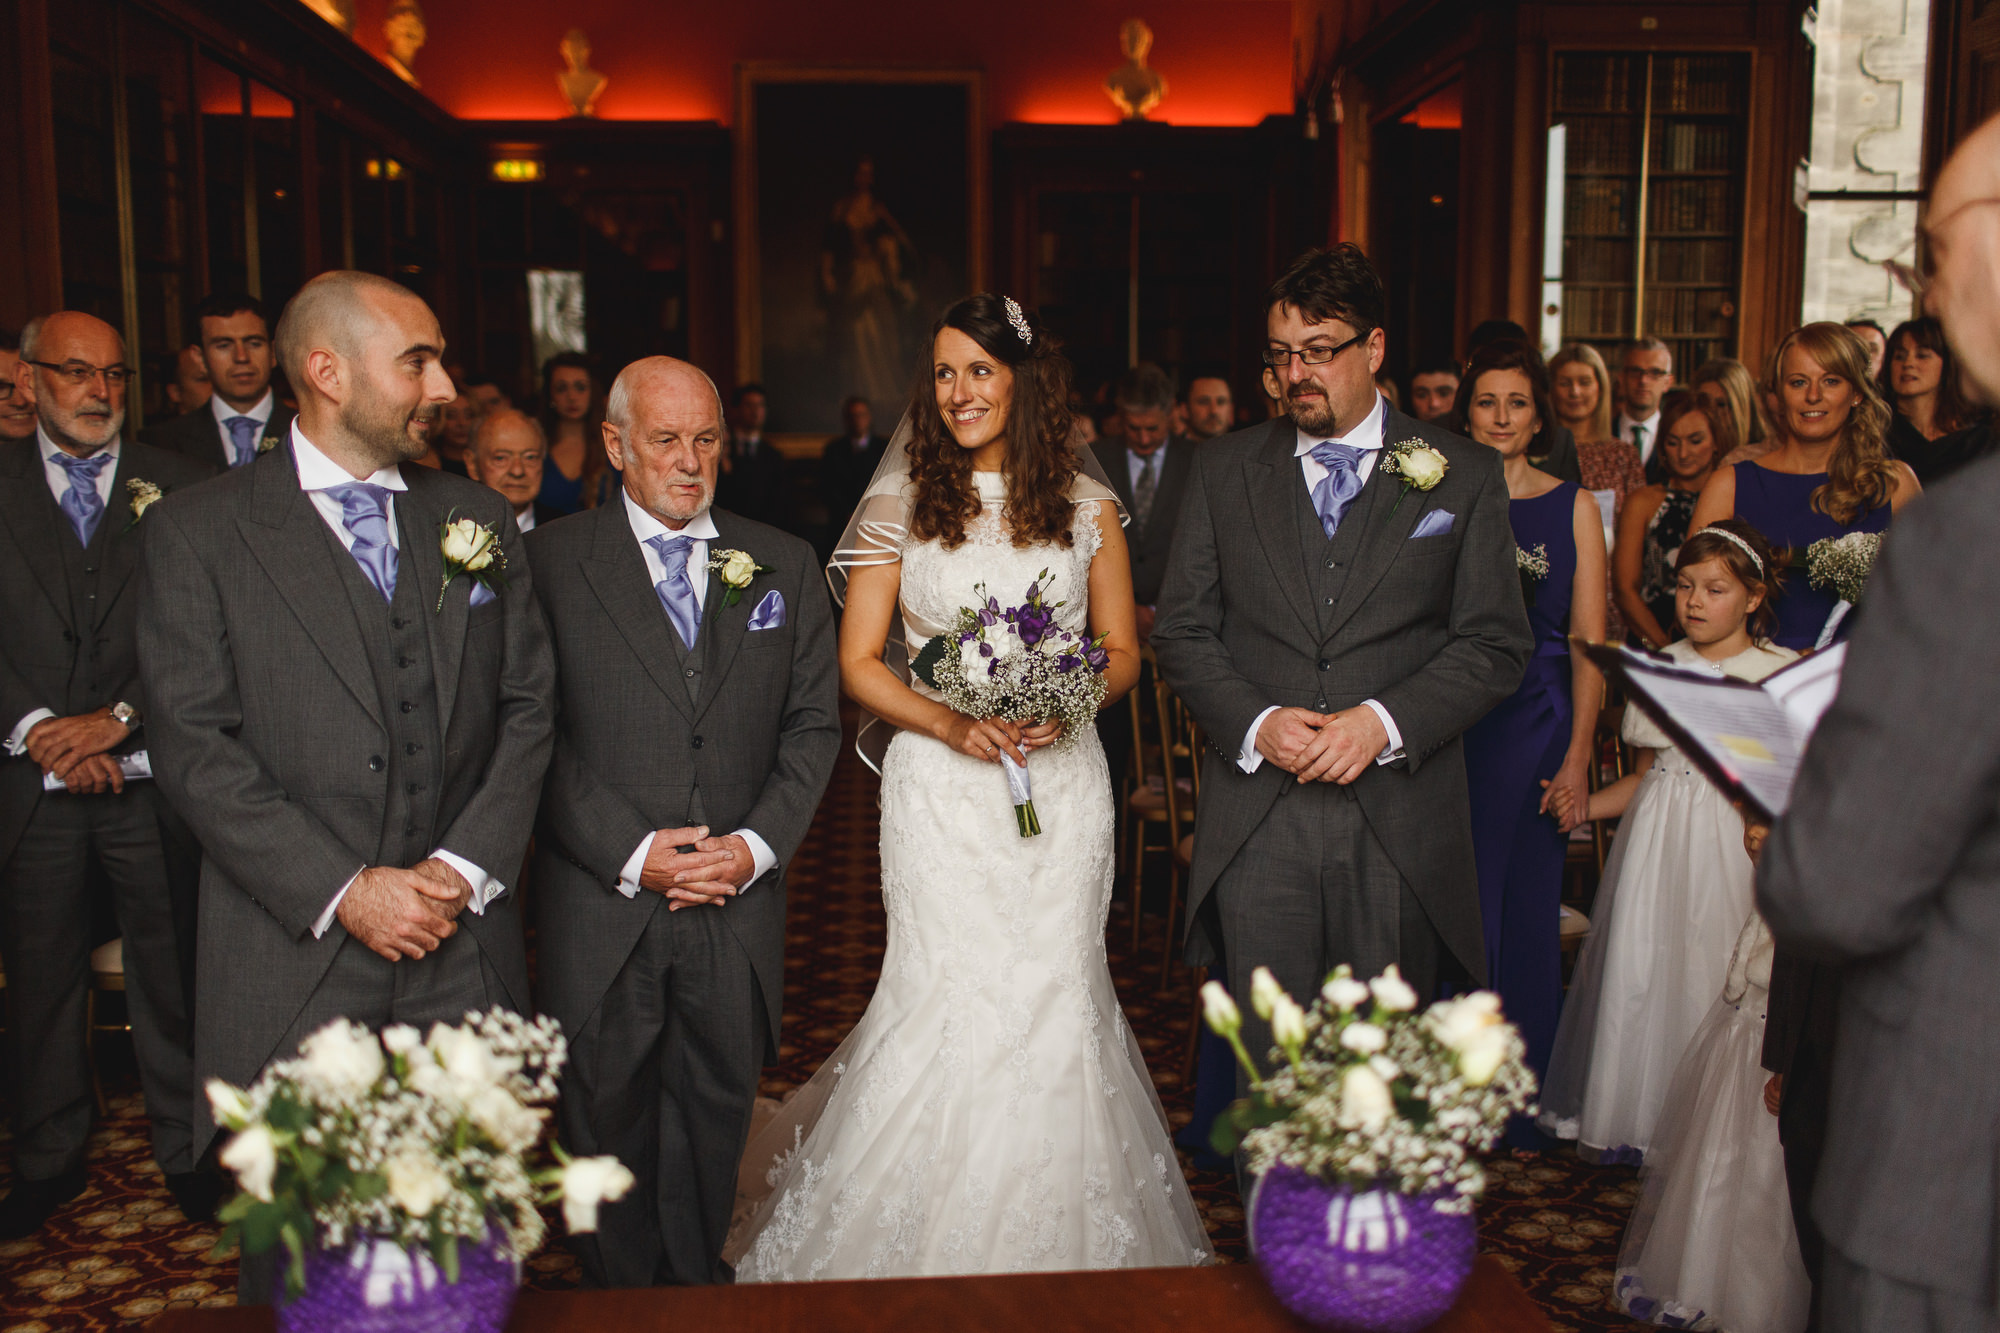 Sandon Hall Wedding Photographer - ARJ Photography